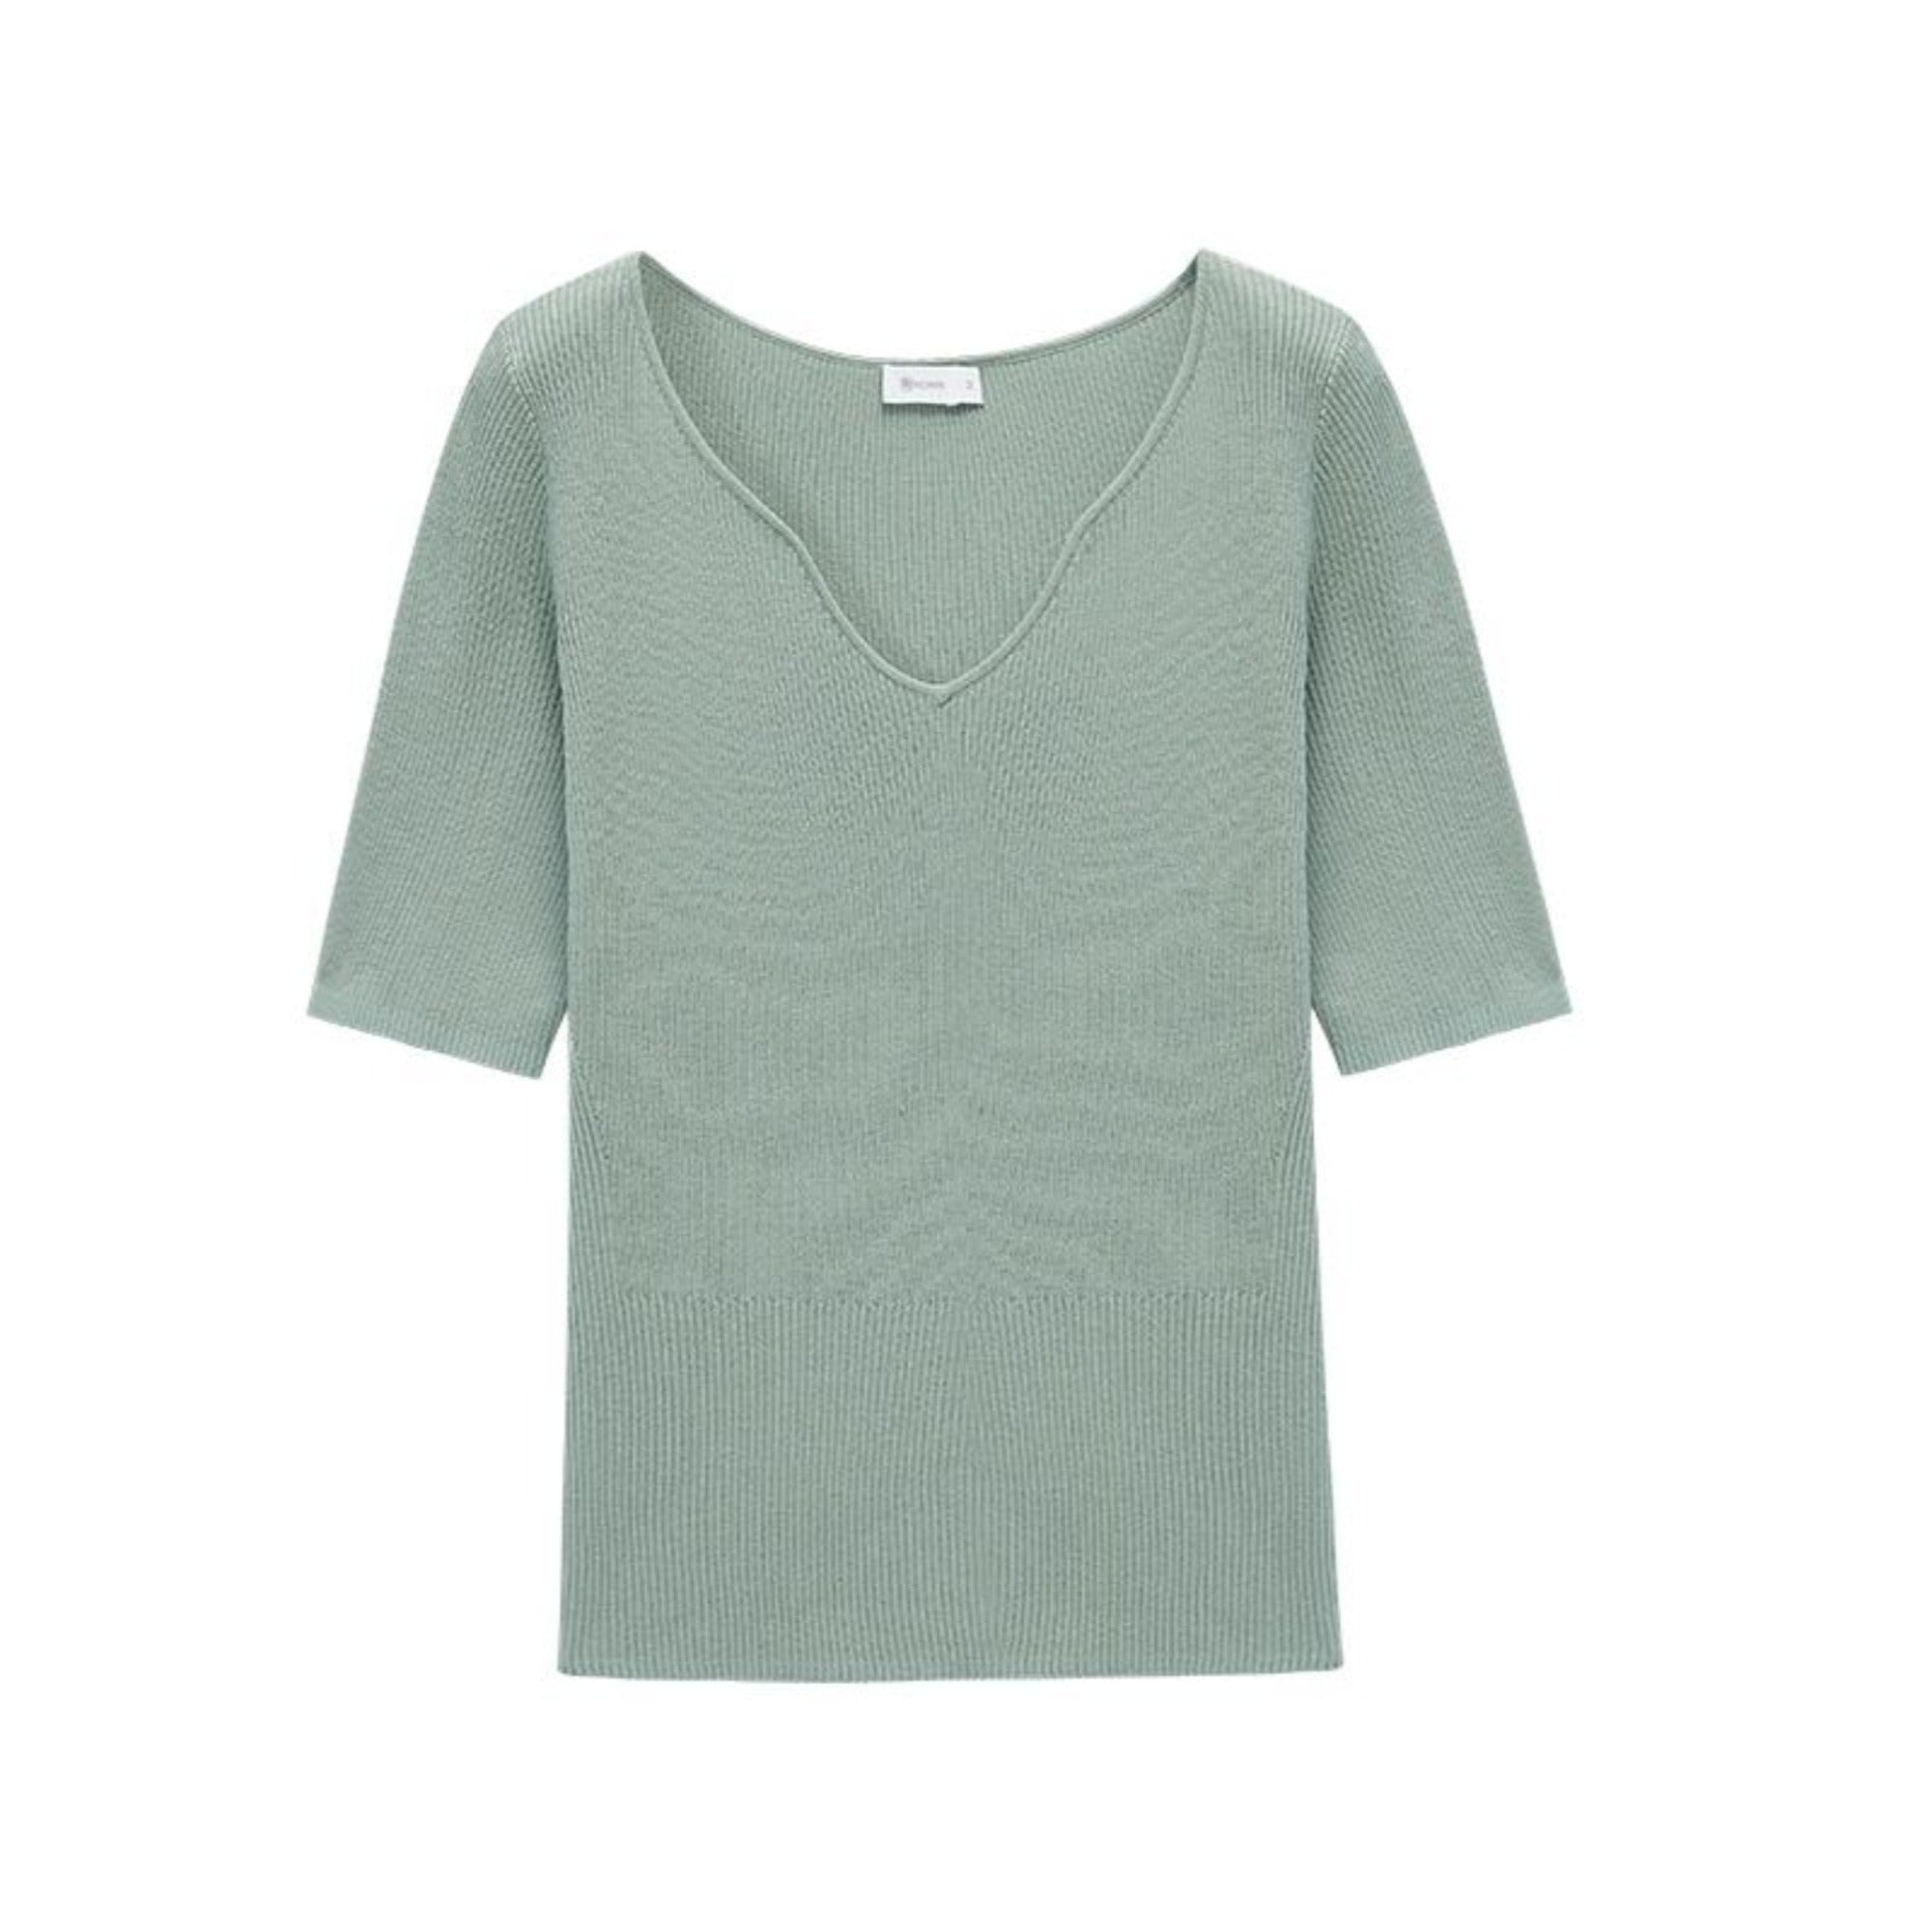 NEIWAI's Pure Simplicity Silk Blend V-neck Short Sleeve Top in Cascade.